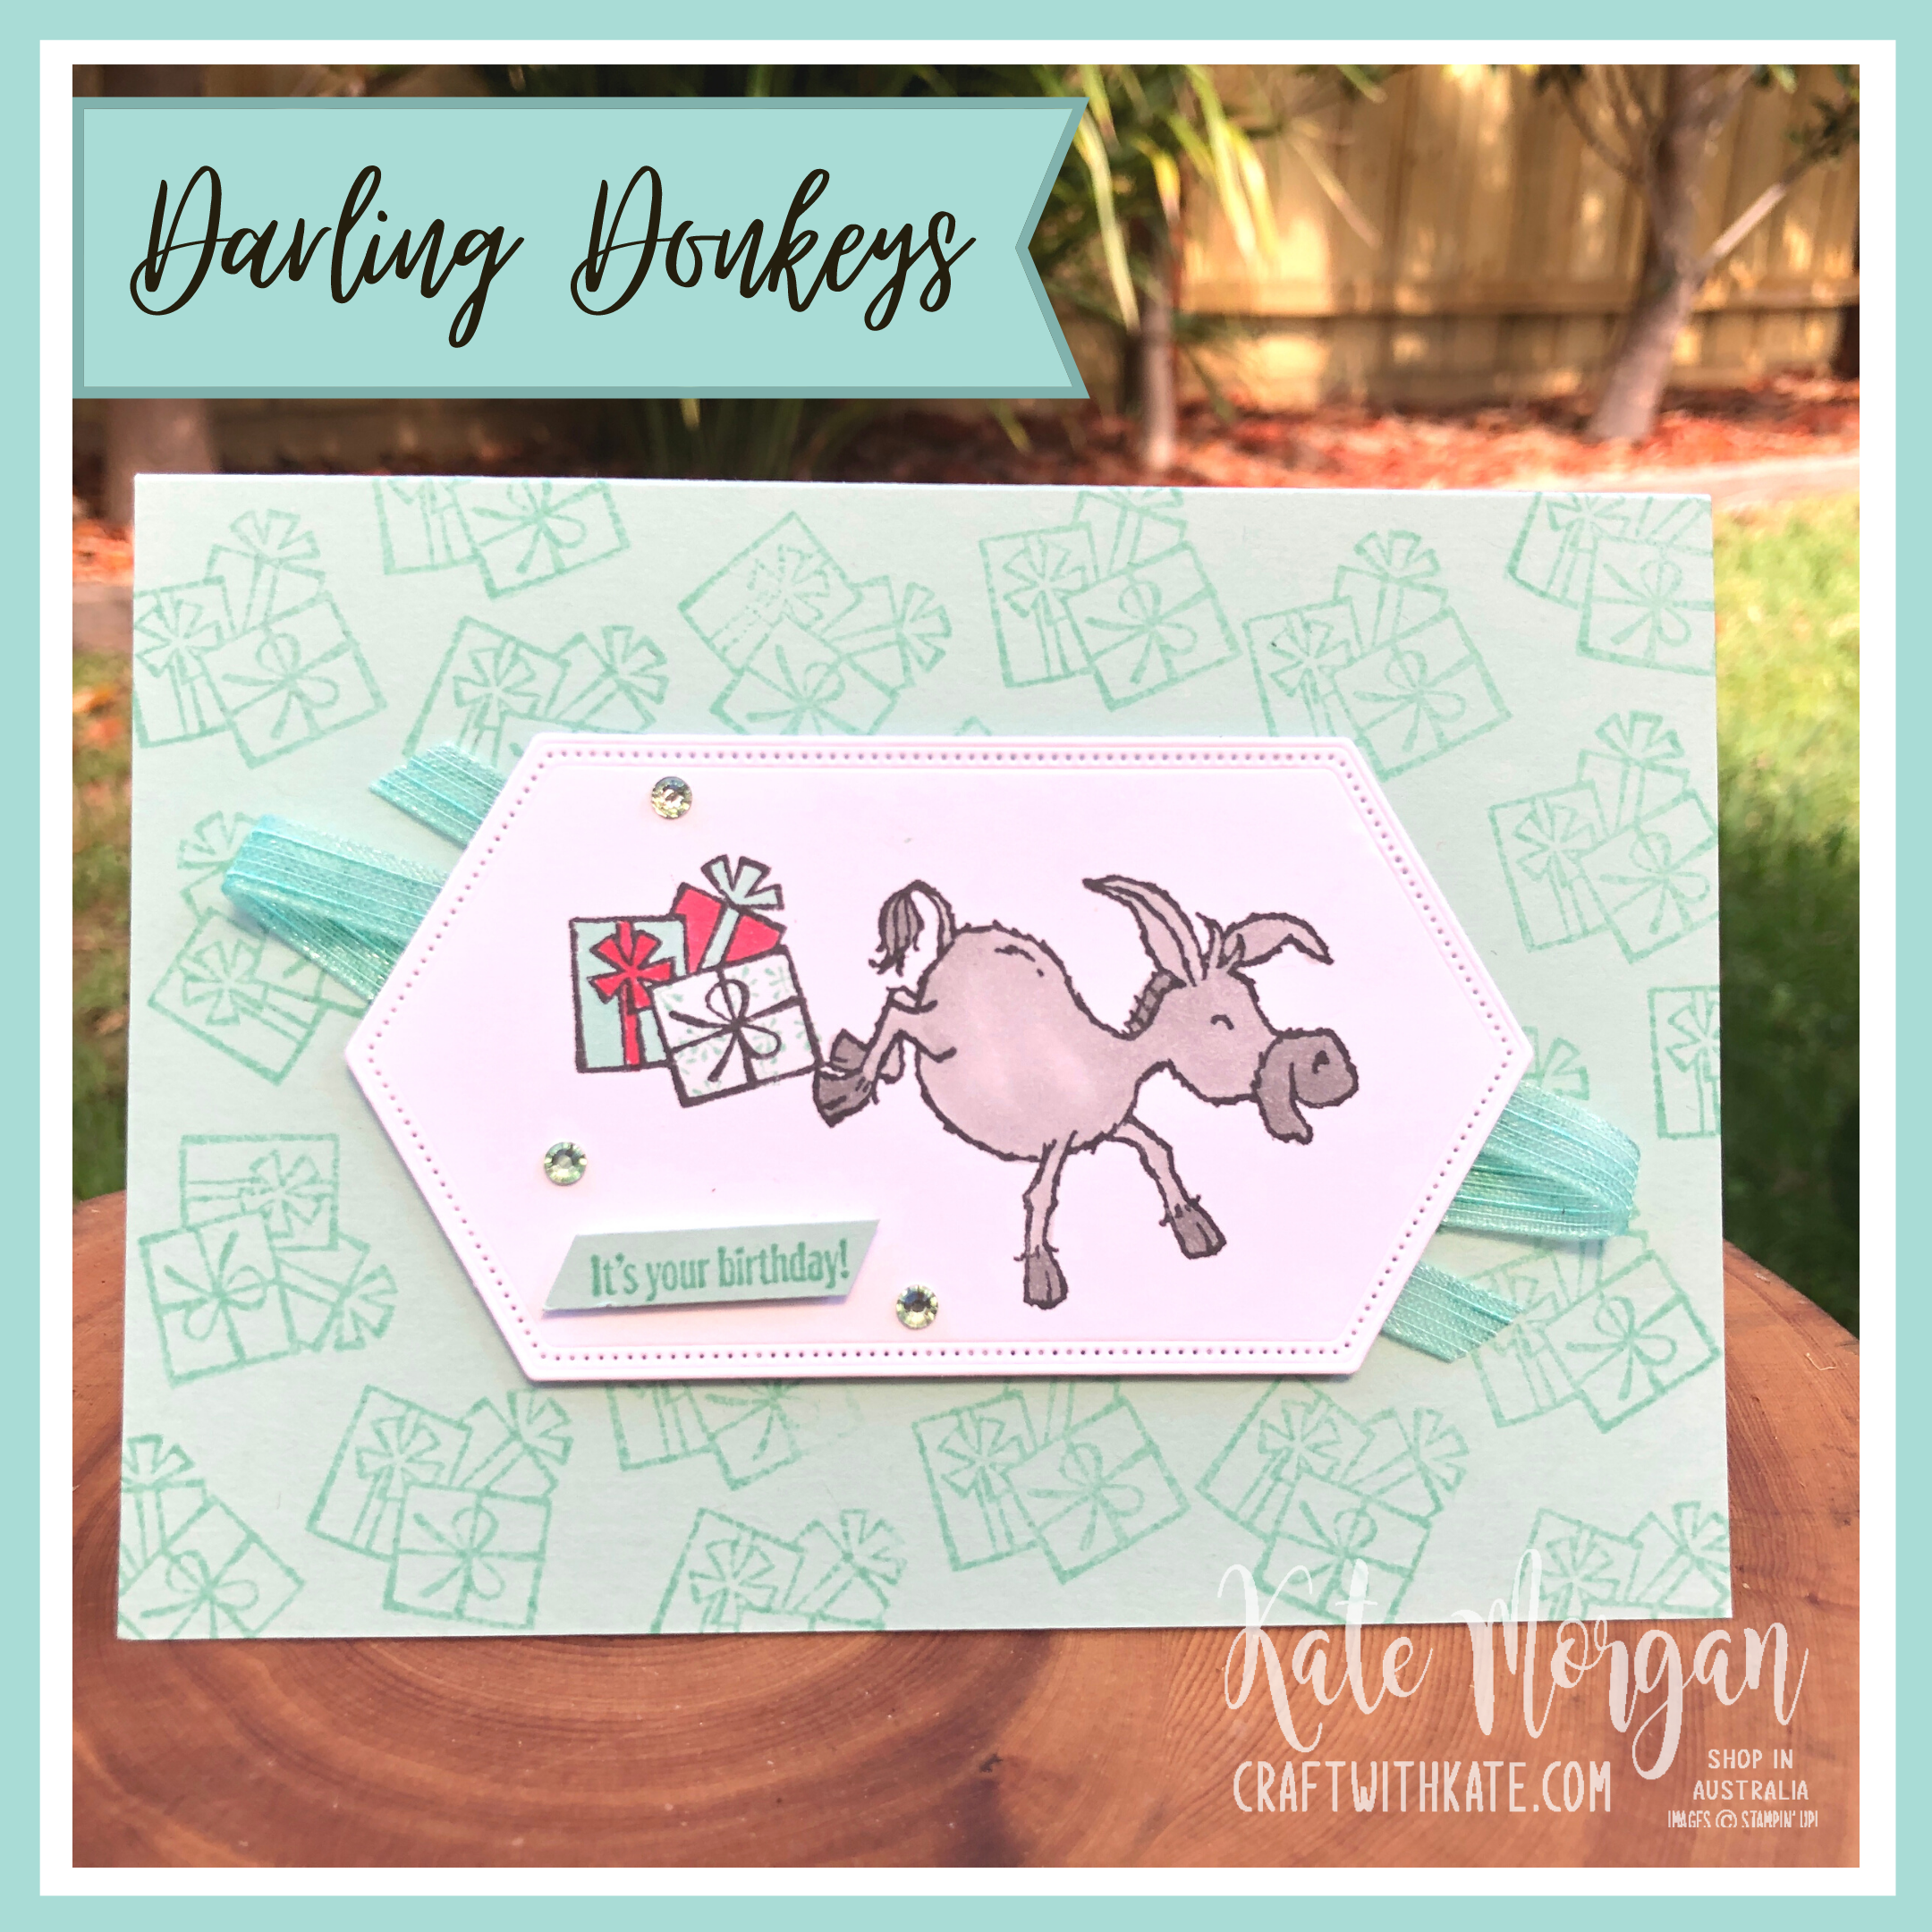 Darling Donkeys Birthday card for Pool Party Colour Creations Showcase by Kate Morgan, Stampin Up Australia 2021